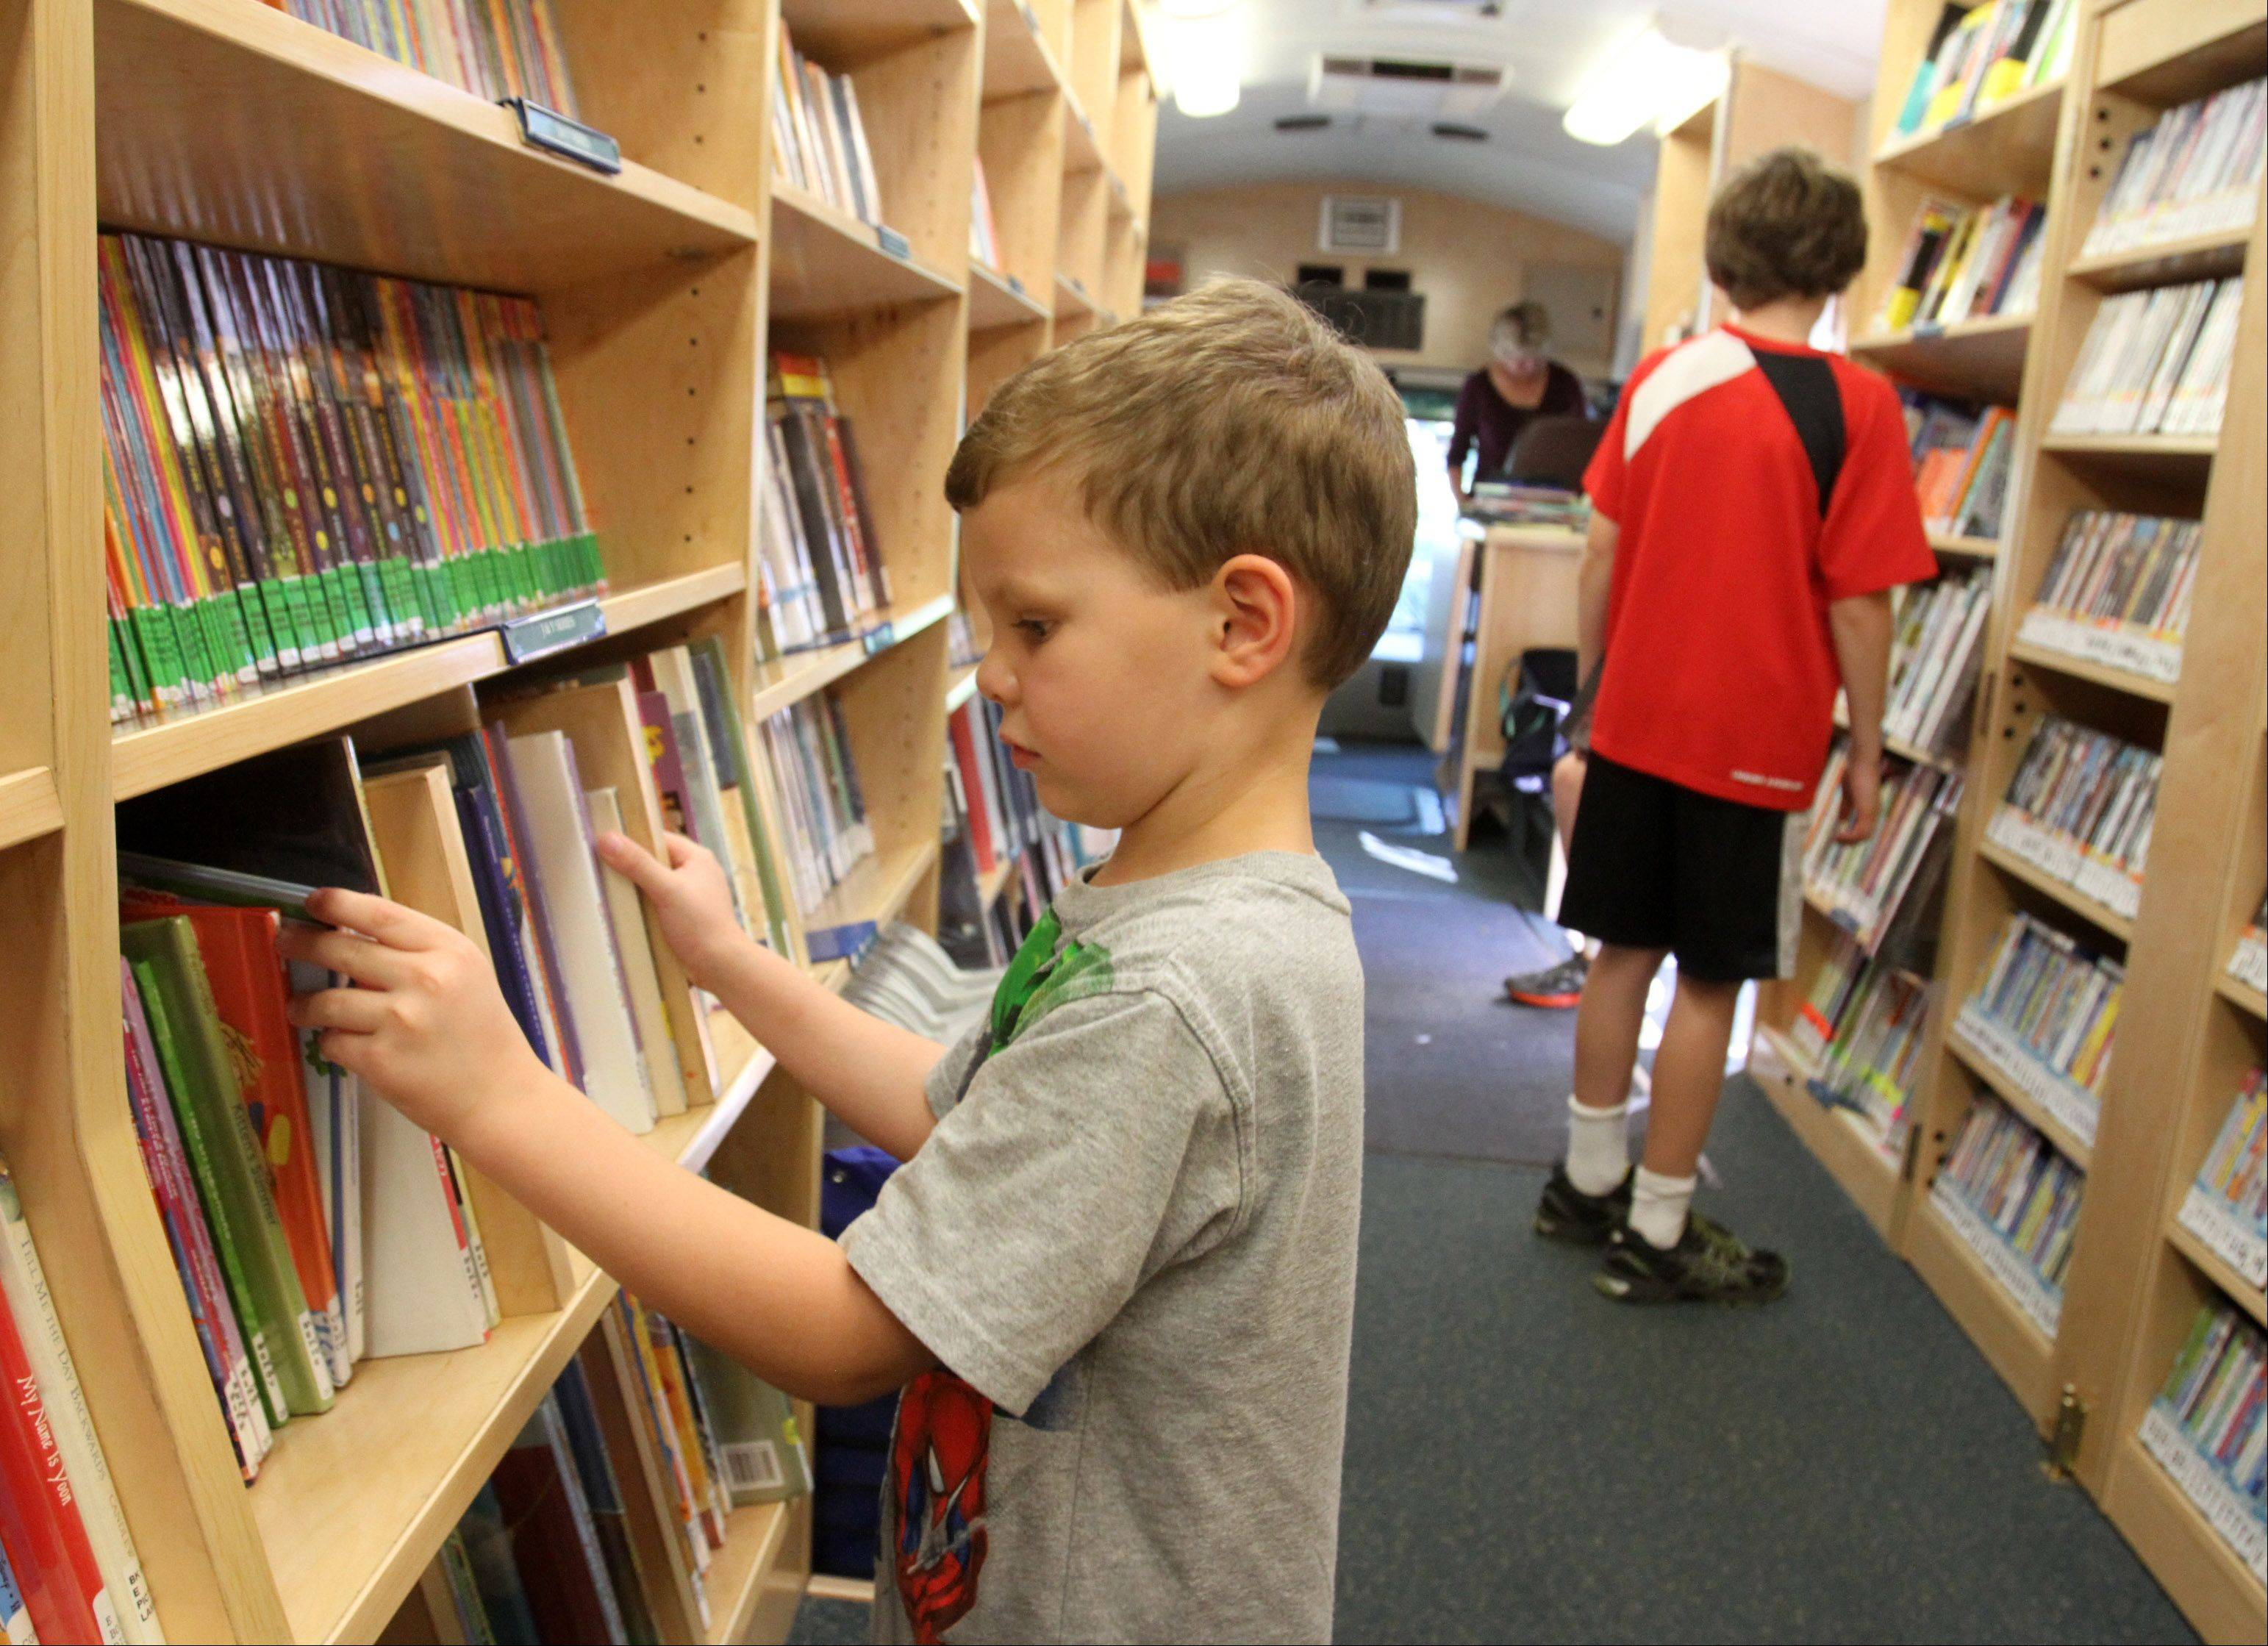 Four-year-old Jake Bozikis of Arlington Heights looks at children's books while visiting the Arlington Heights Memorial Library bookmobile with his mom, Michele, on Sept. 12, near Olive-Mary Stitt Elementary School.